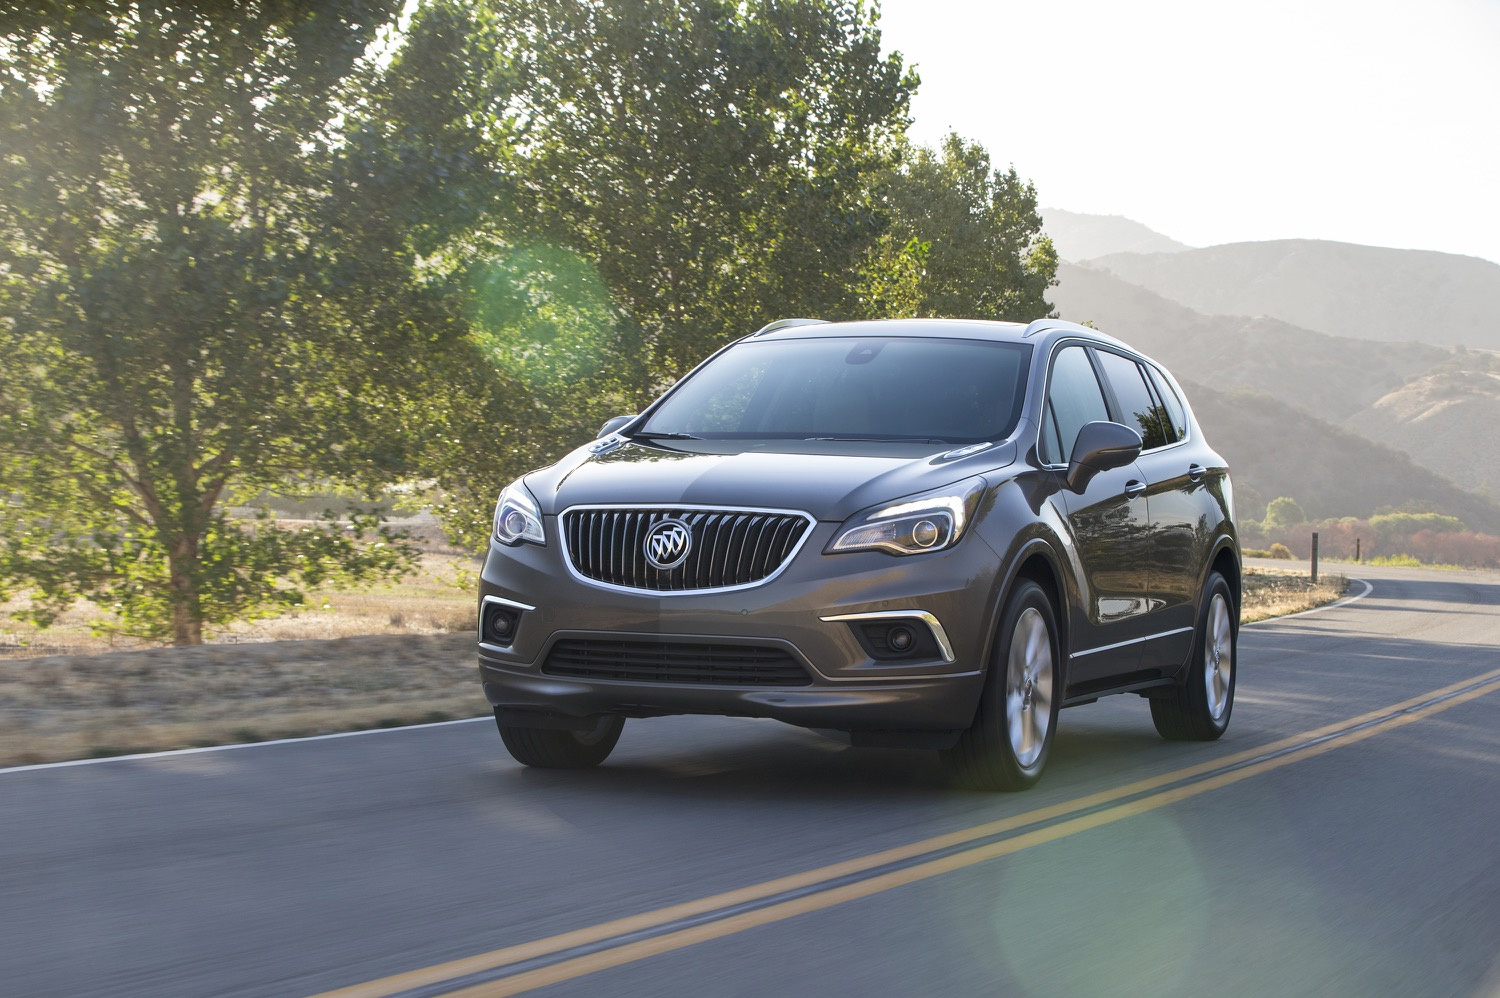 2017 Buick Envision #6